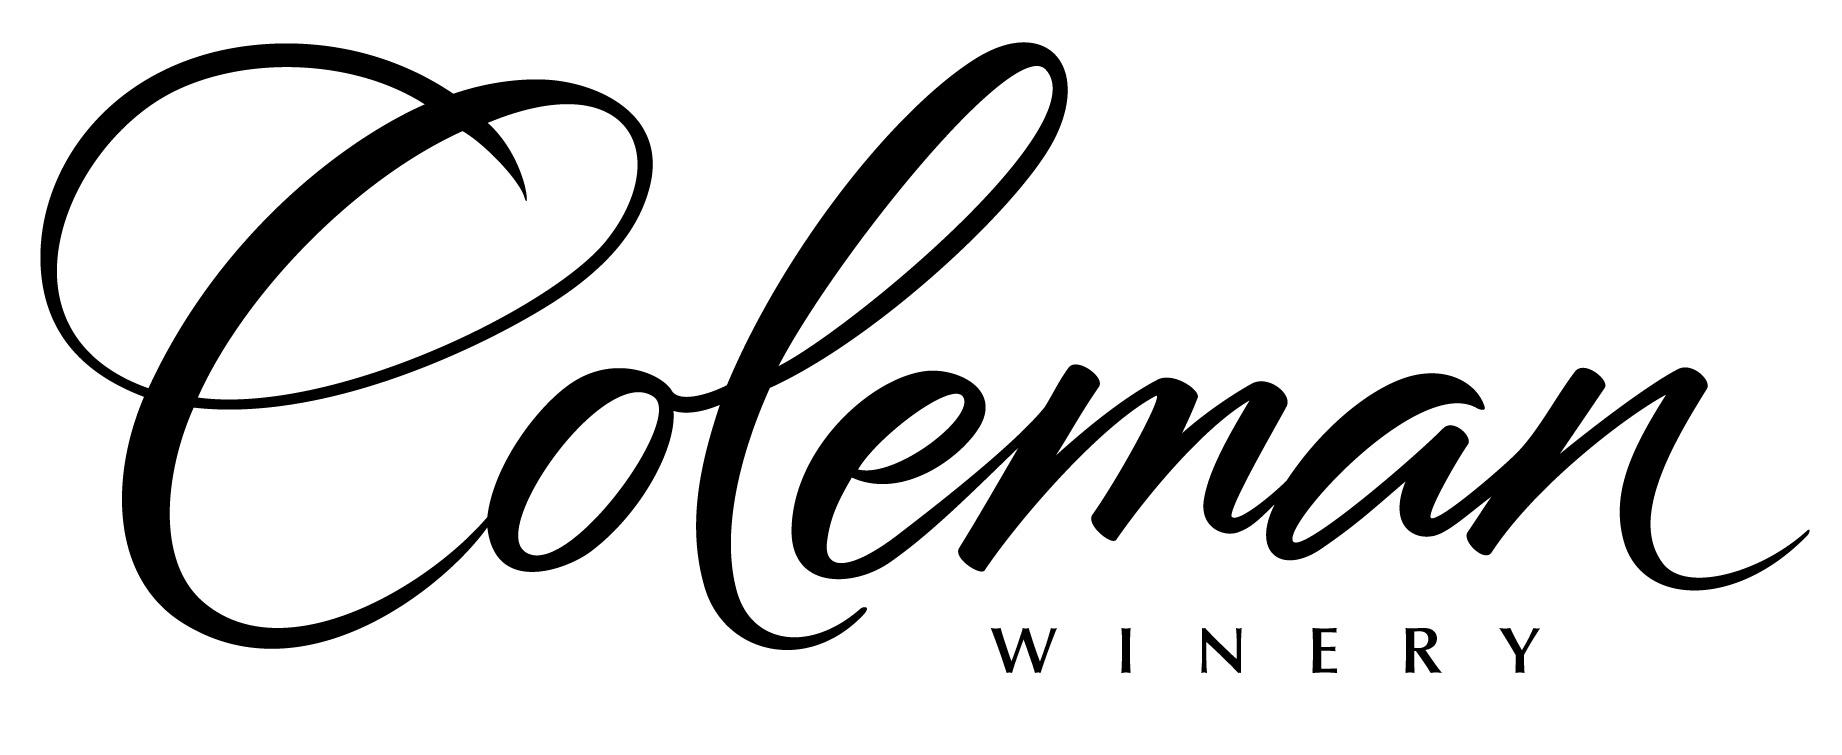 Coleman Winery